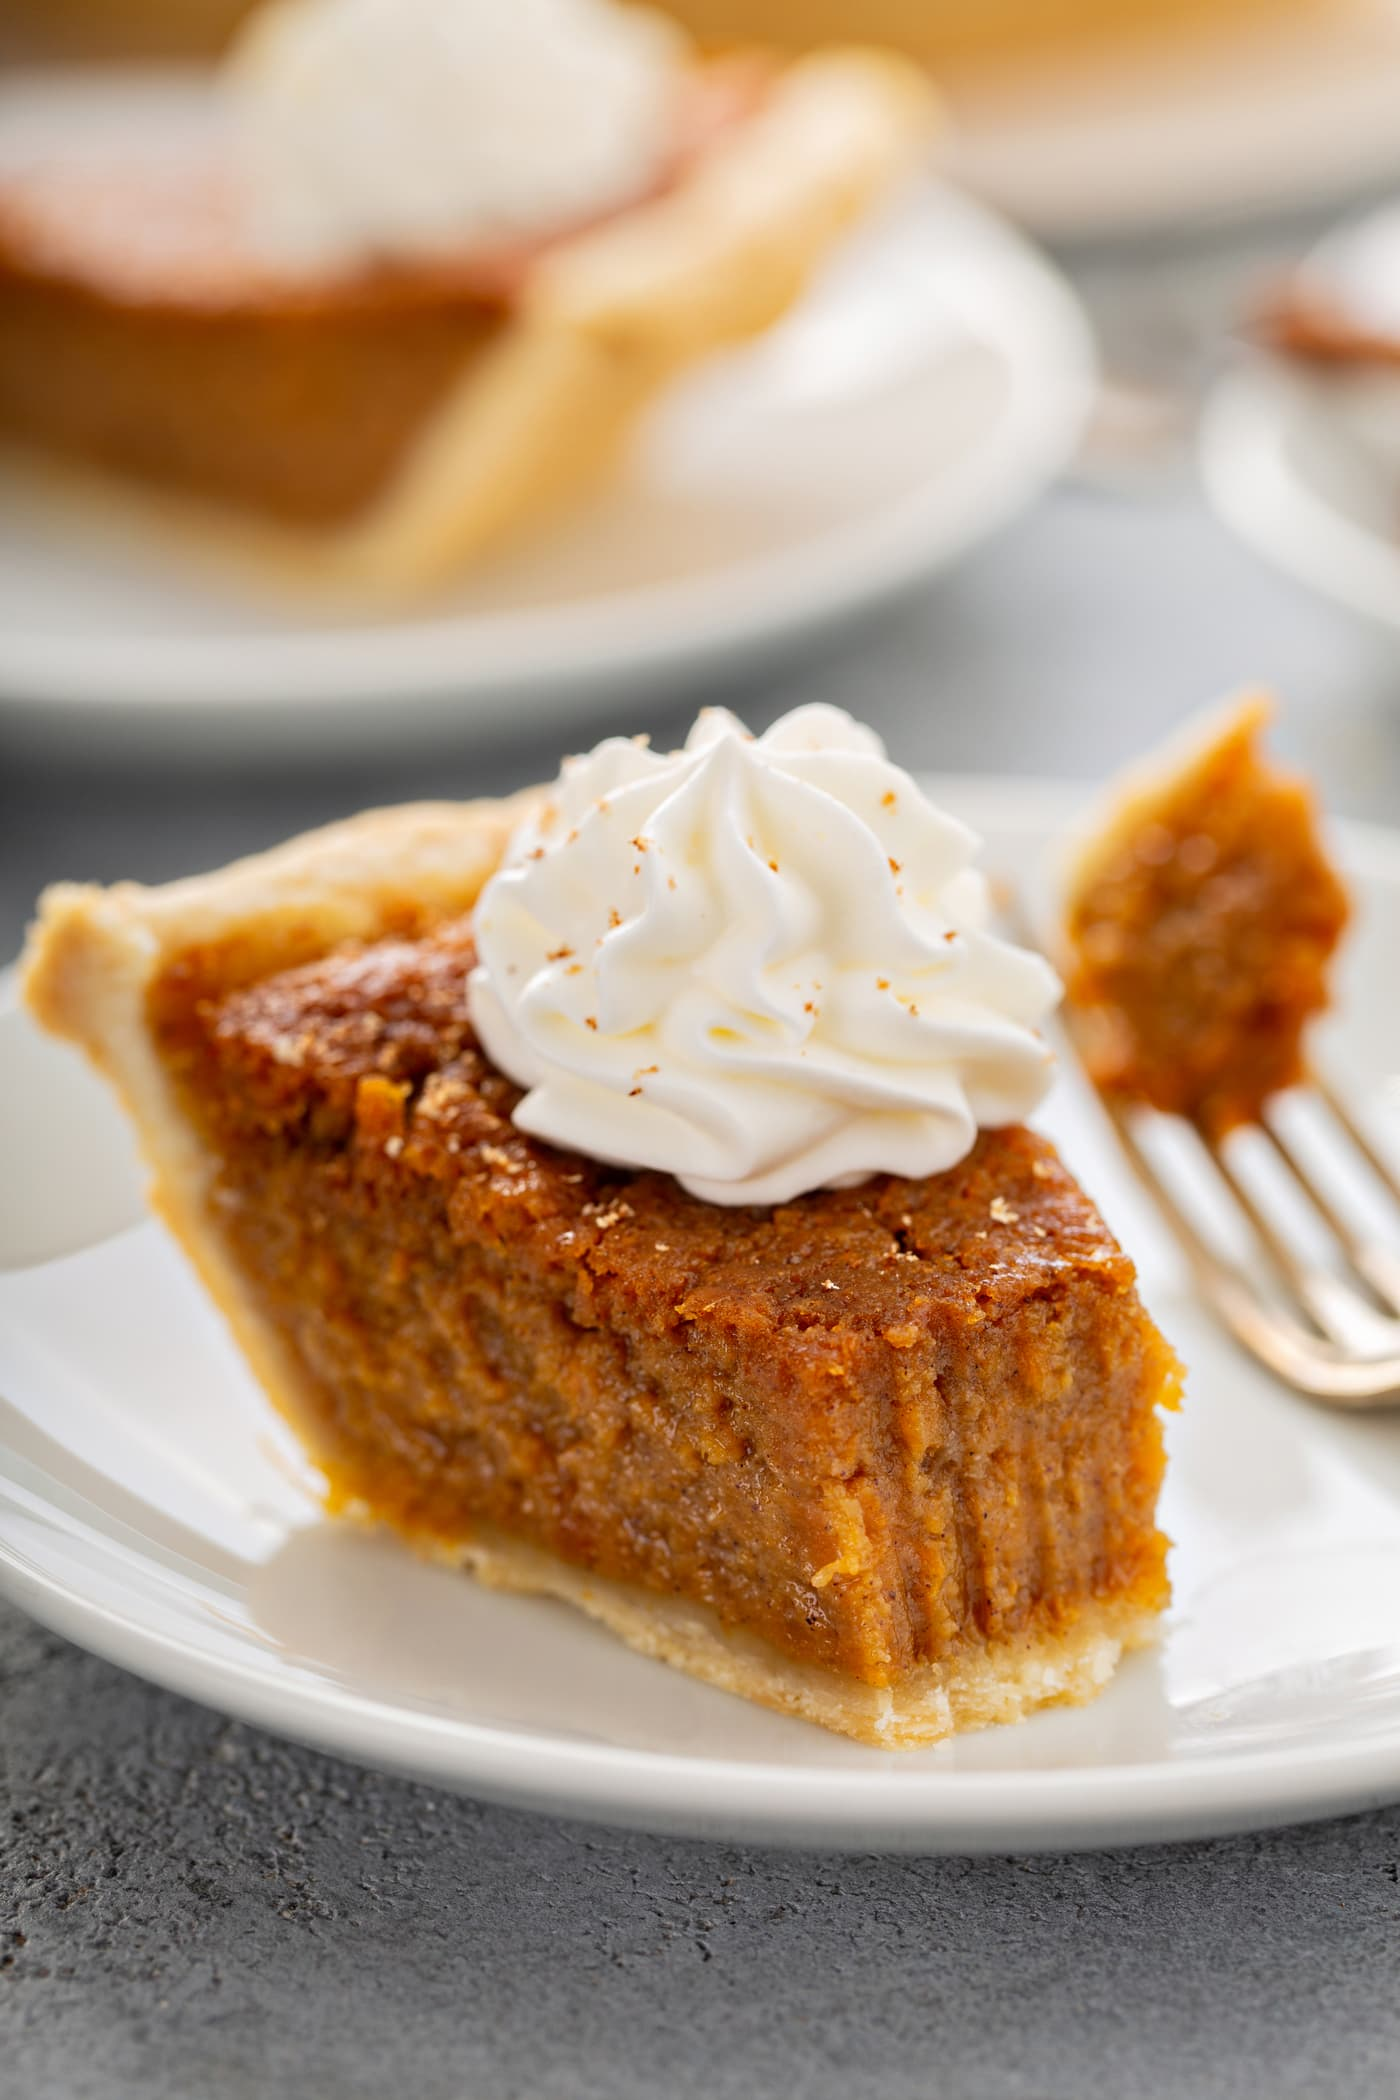 A photo of a bite of sweet potato pie being removed from a slice with a fork.